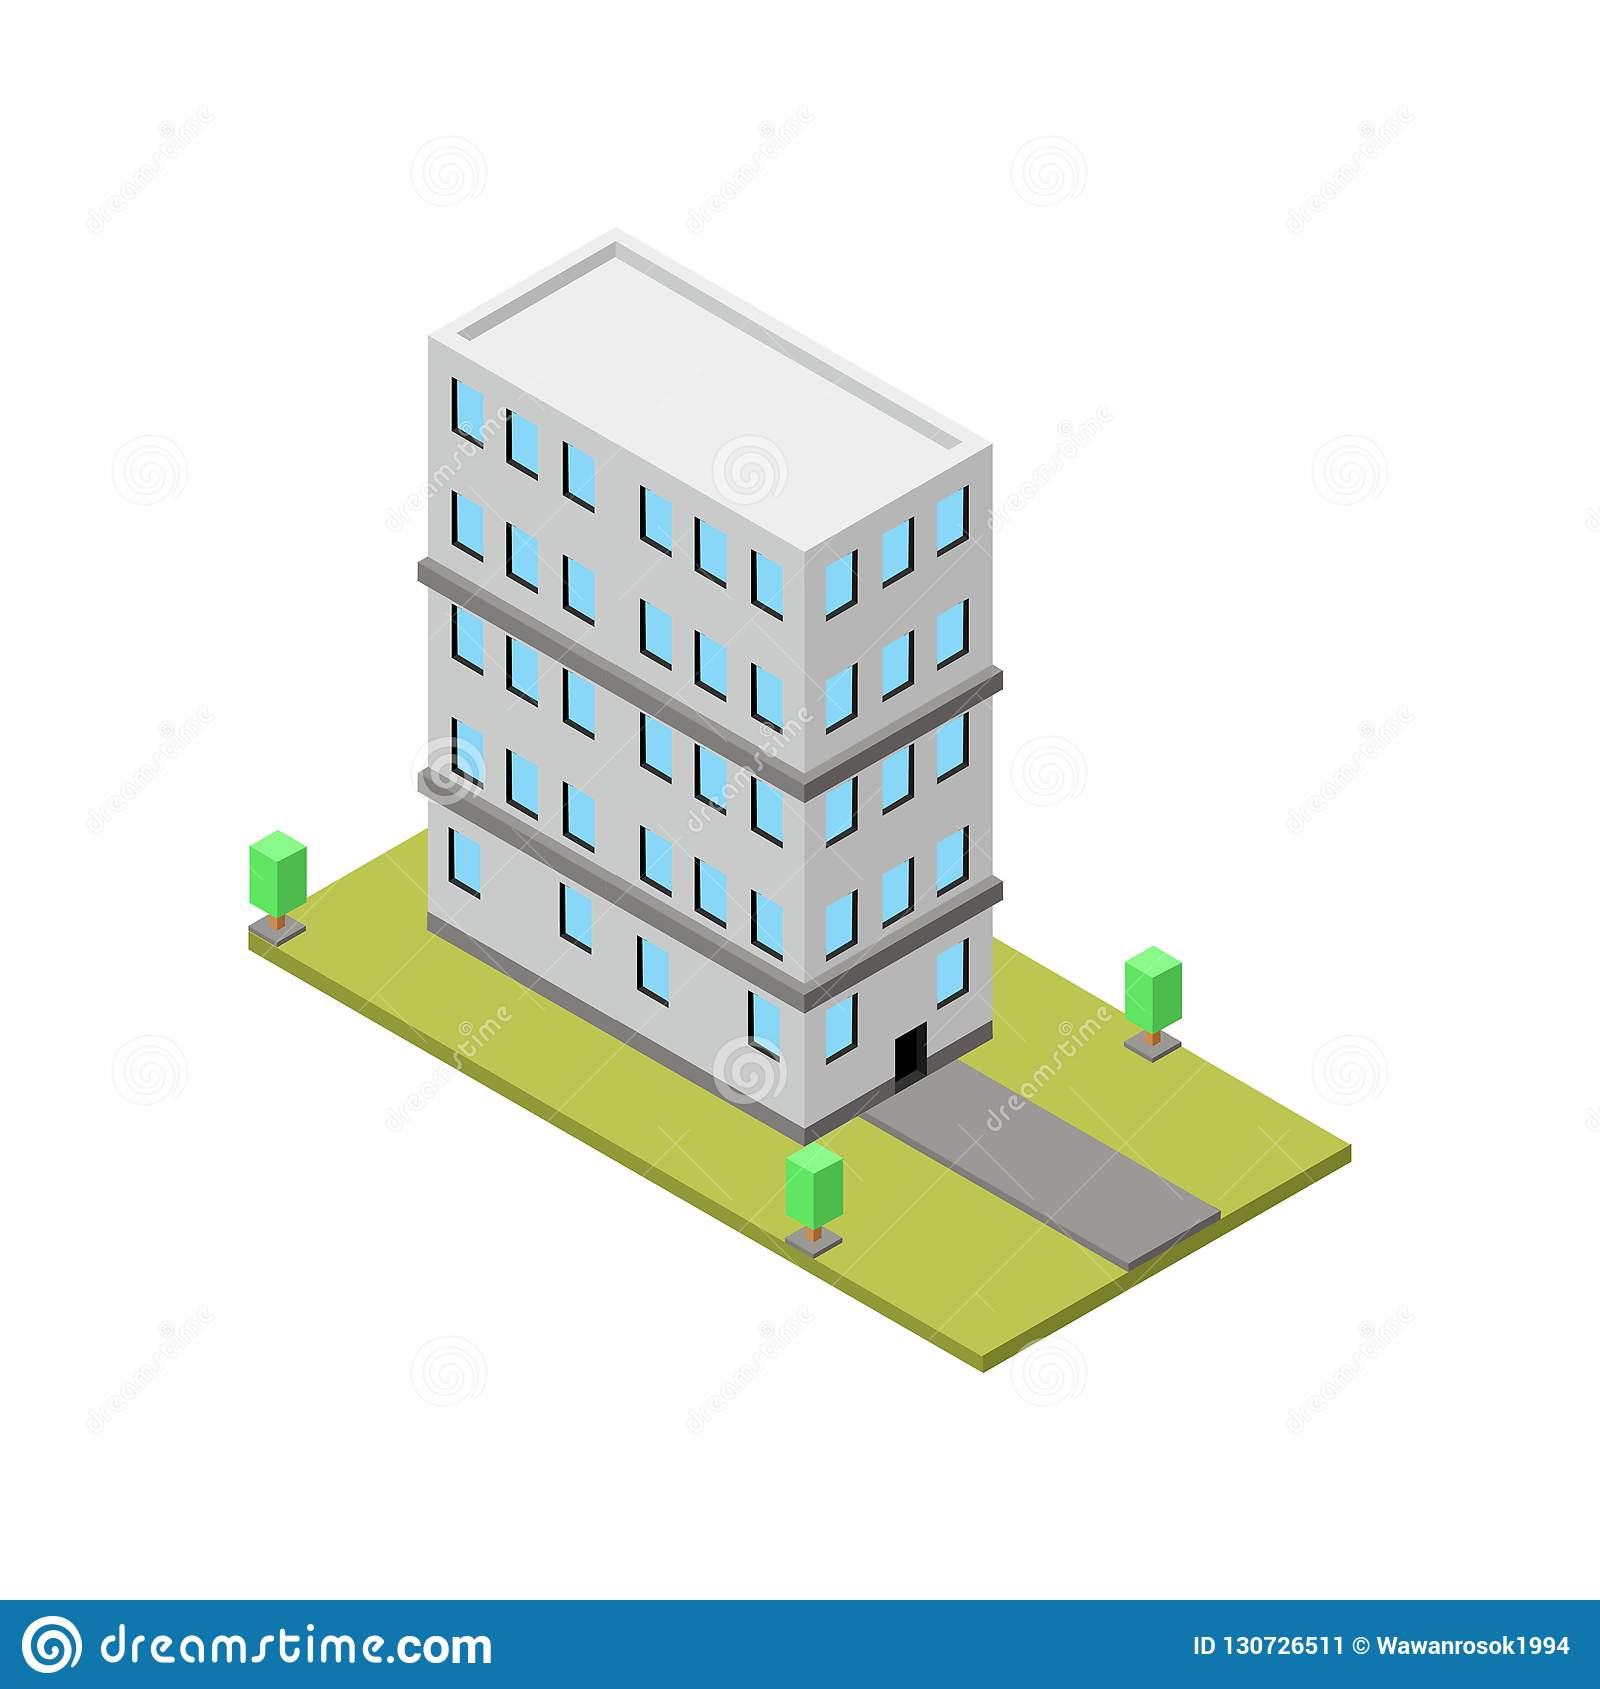 Bangunan 3d Building Isometric Illustration Vector Illustration Stock Vector